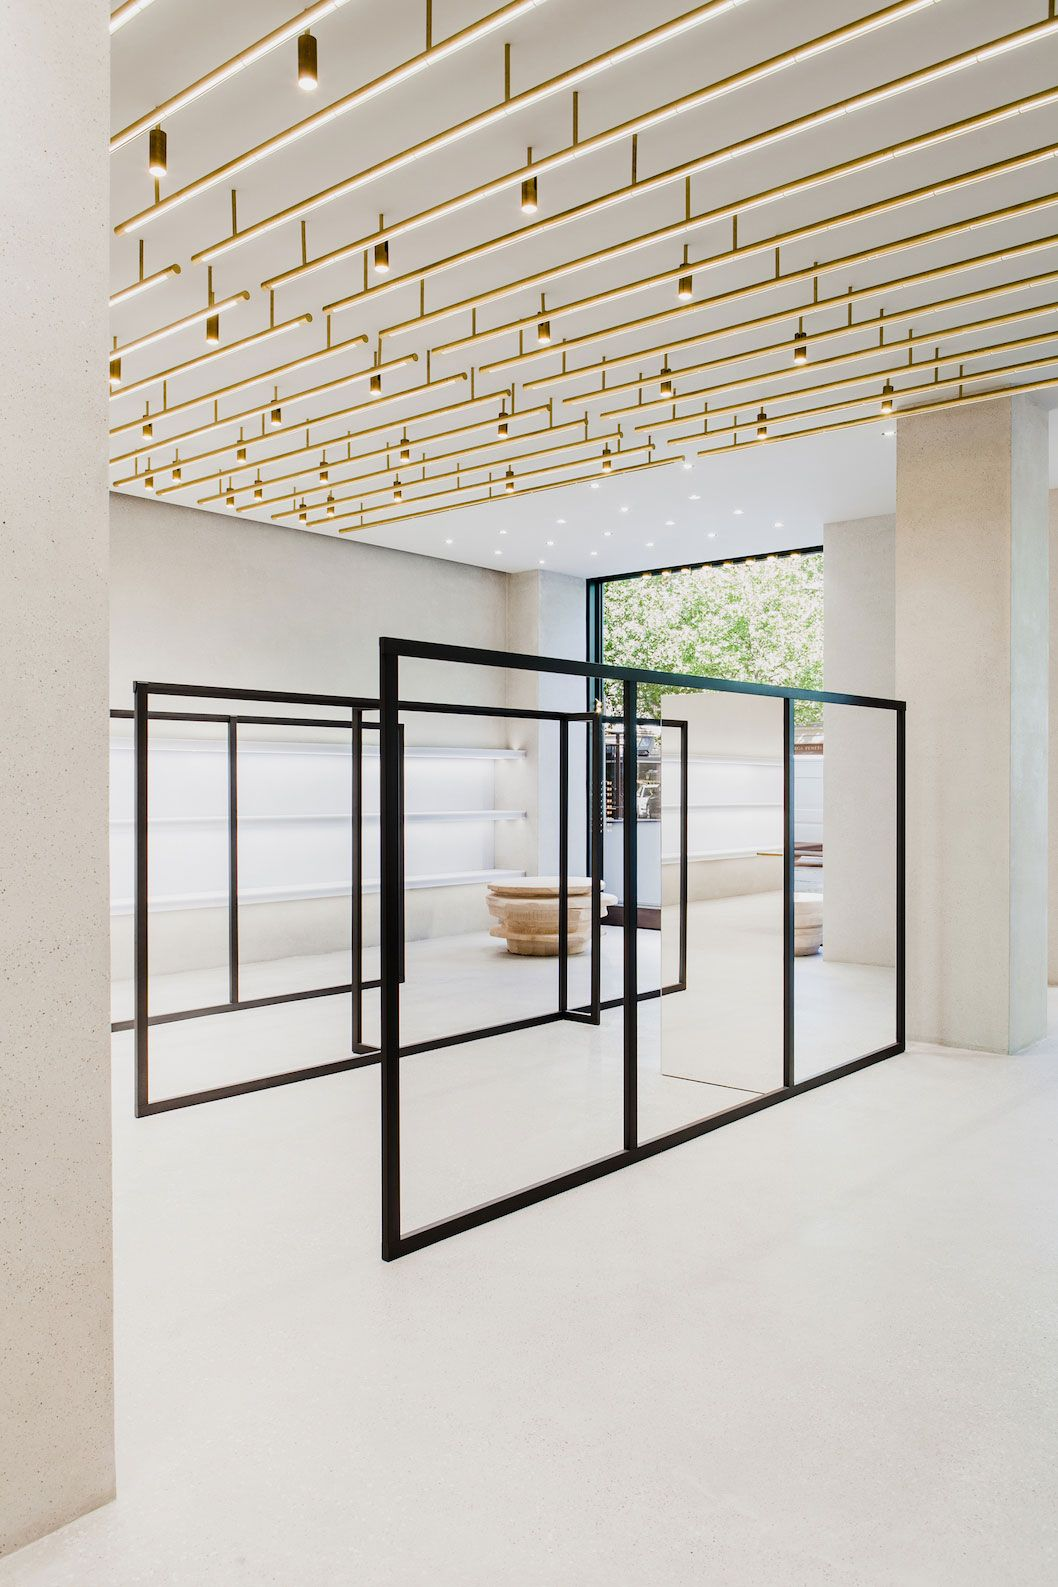 Berlin Interior Design Jil Sander Berlin Store By Andrea Tognon Architecture Interior